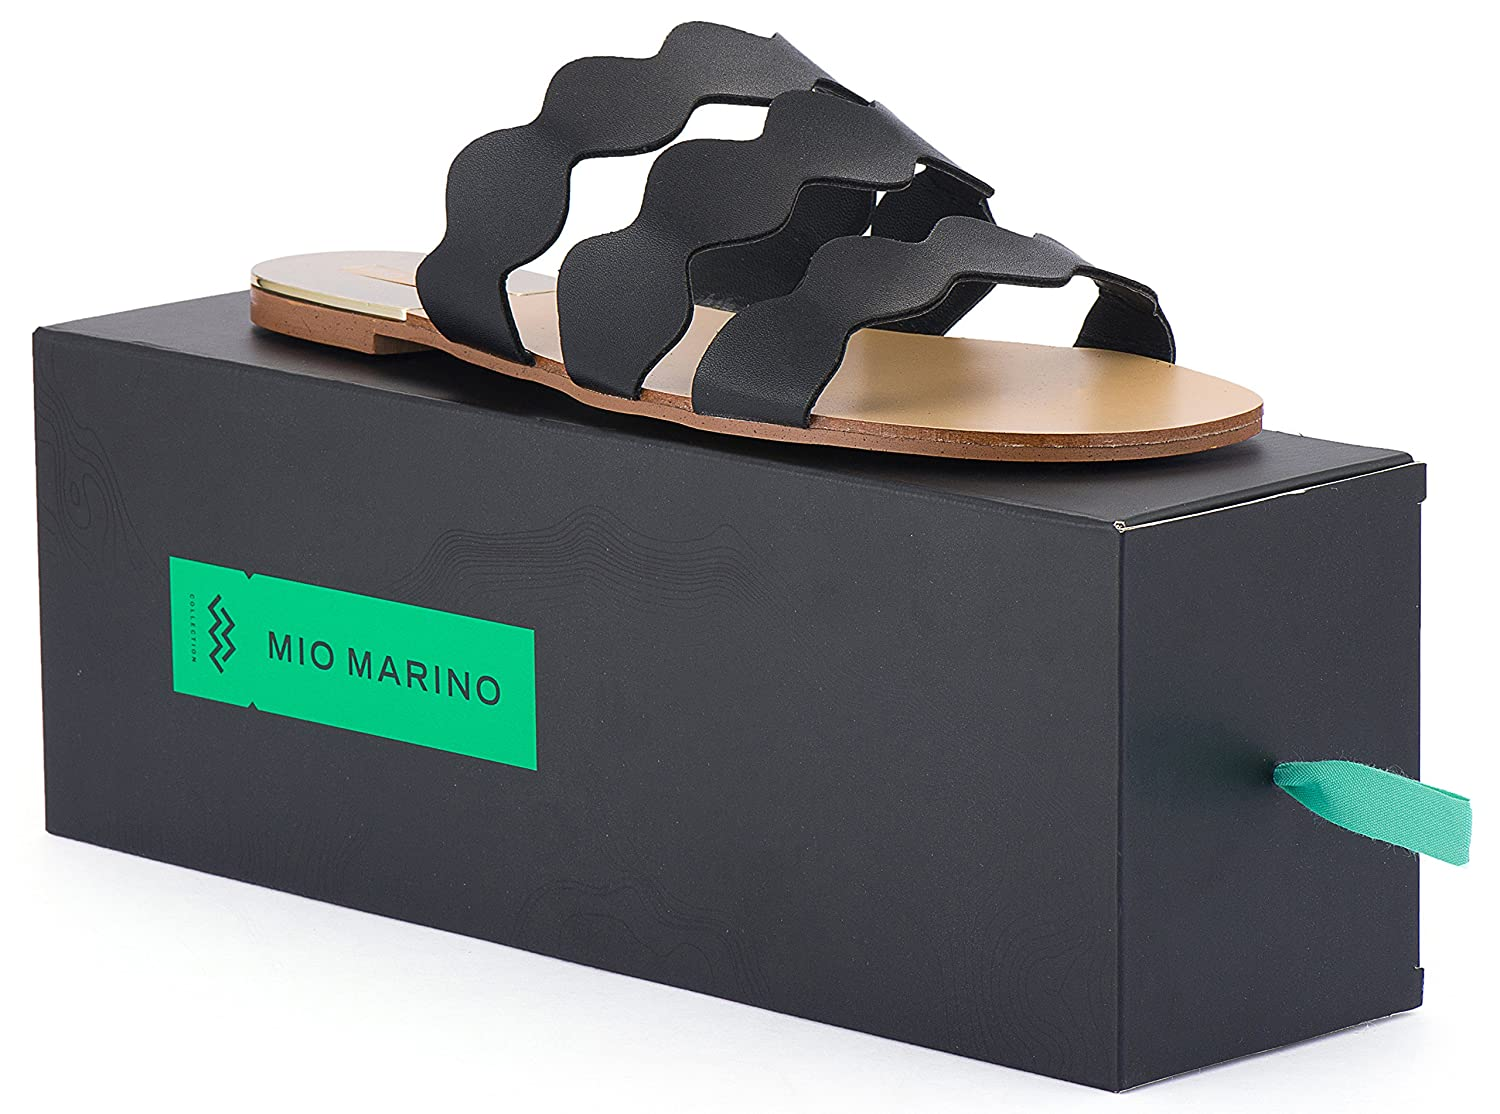 Mio Marino womens slide sandals Frill Scalloped slide for women Enclosed In A Gift Box